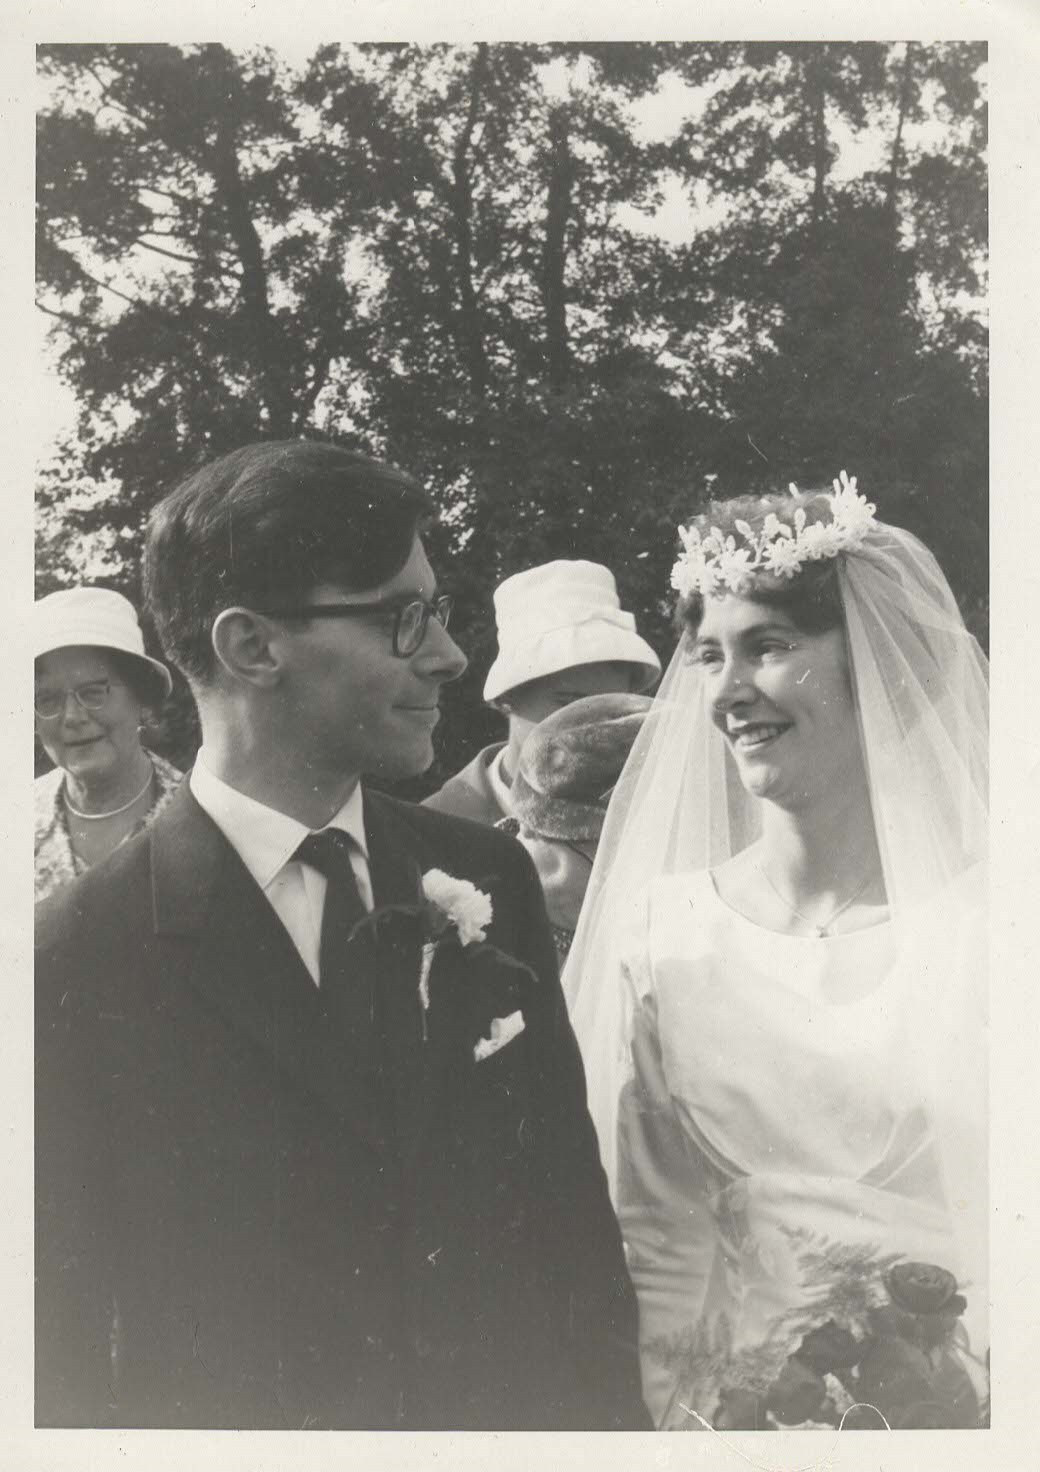 Mum and Dad wedding